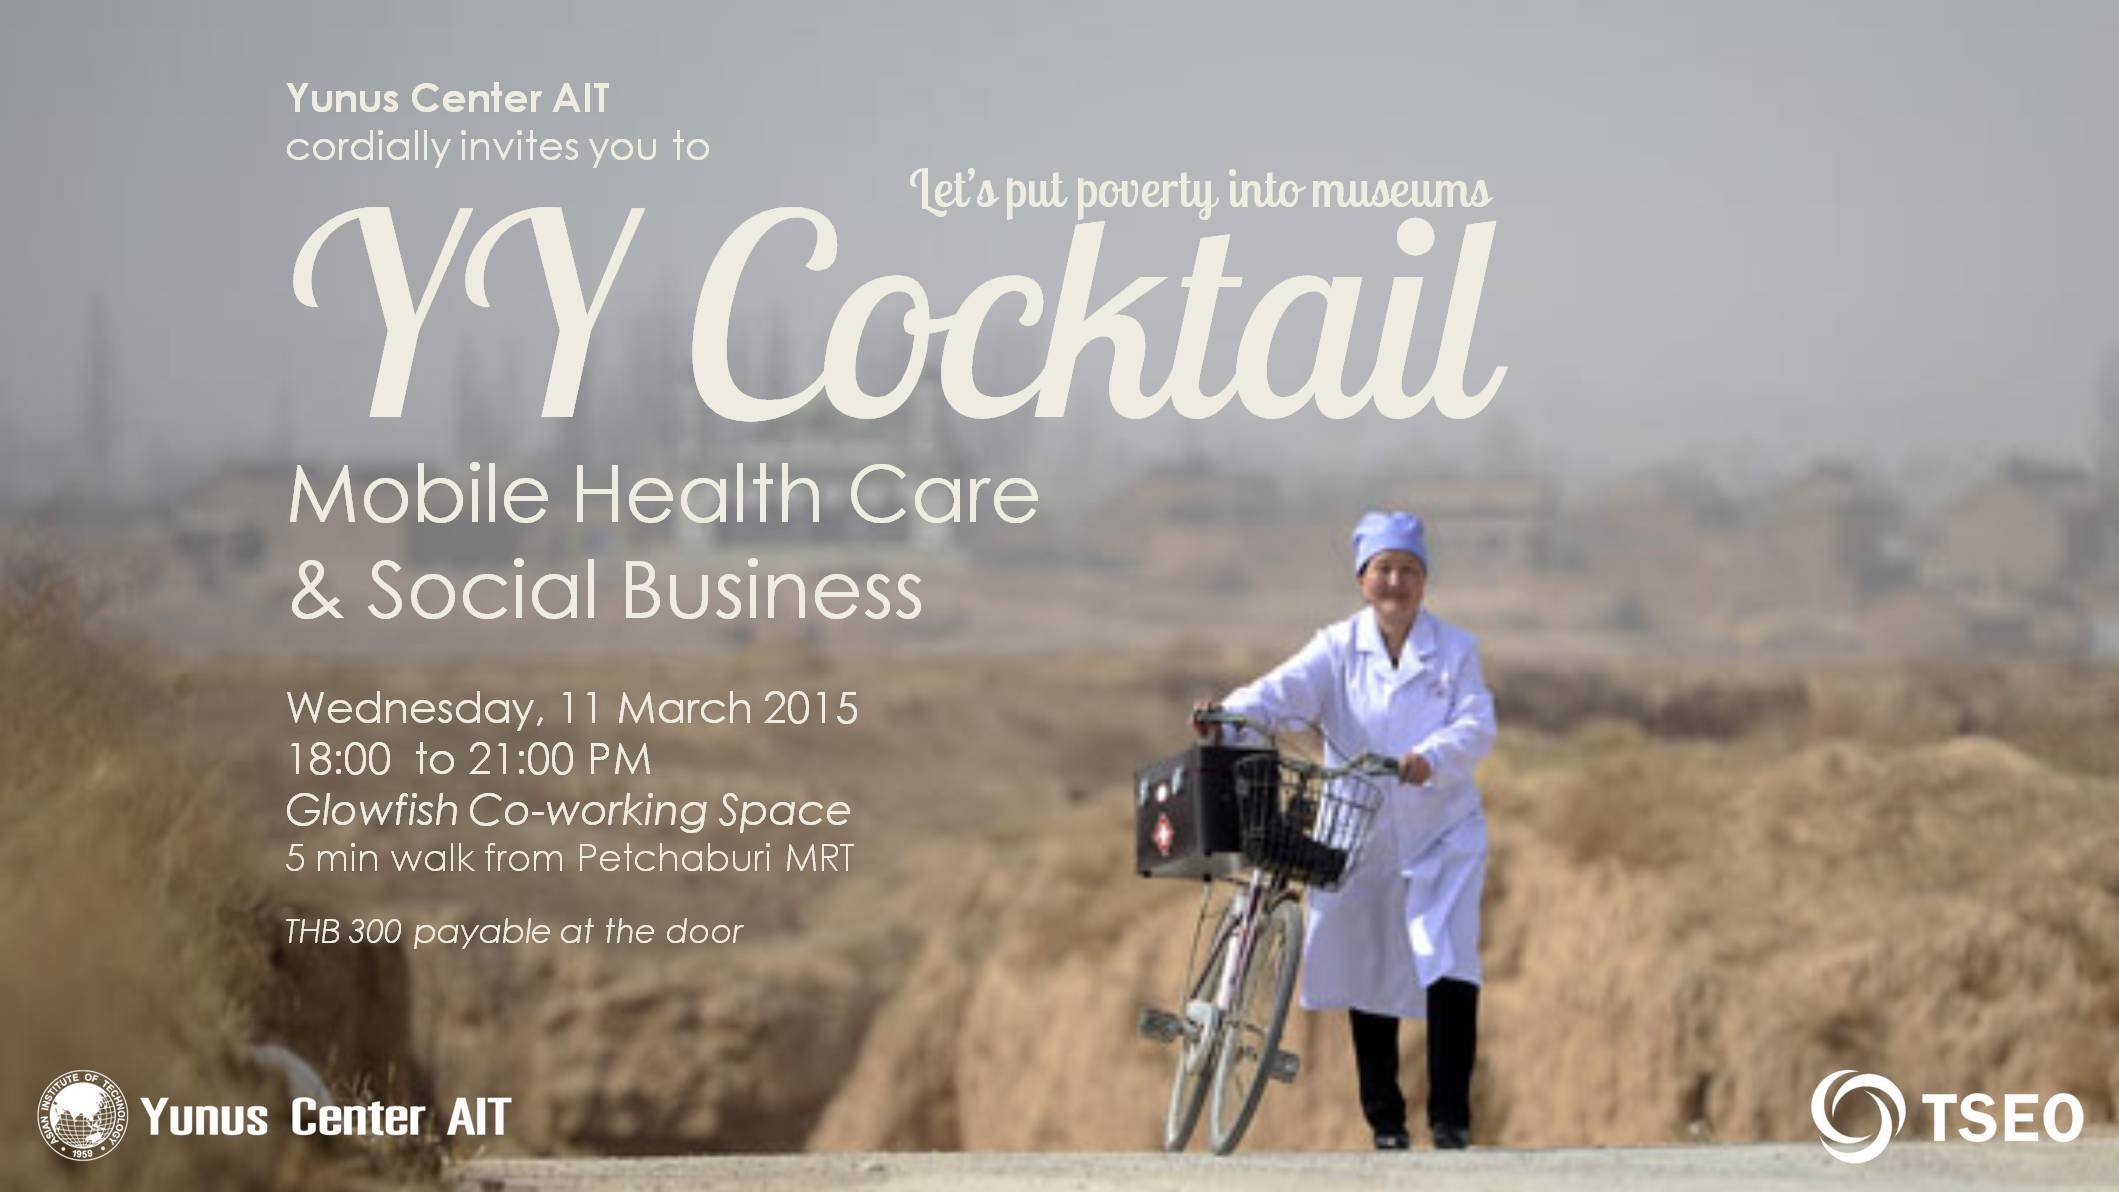 2015.03.11 YYC_Mobile Health Care & Social Business